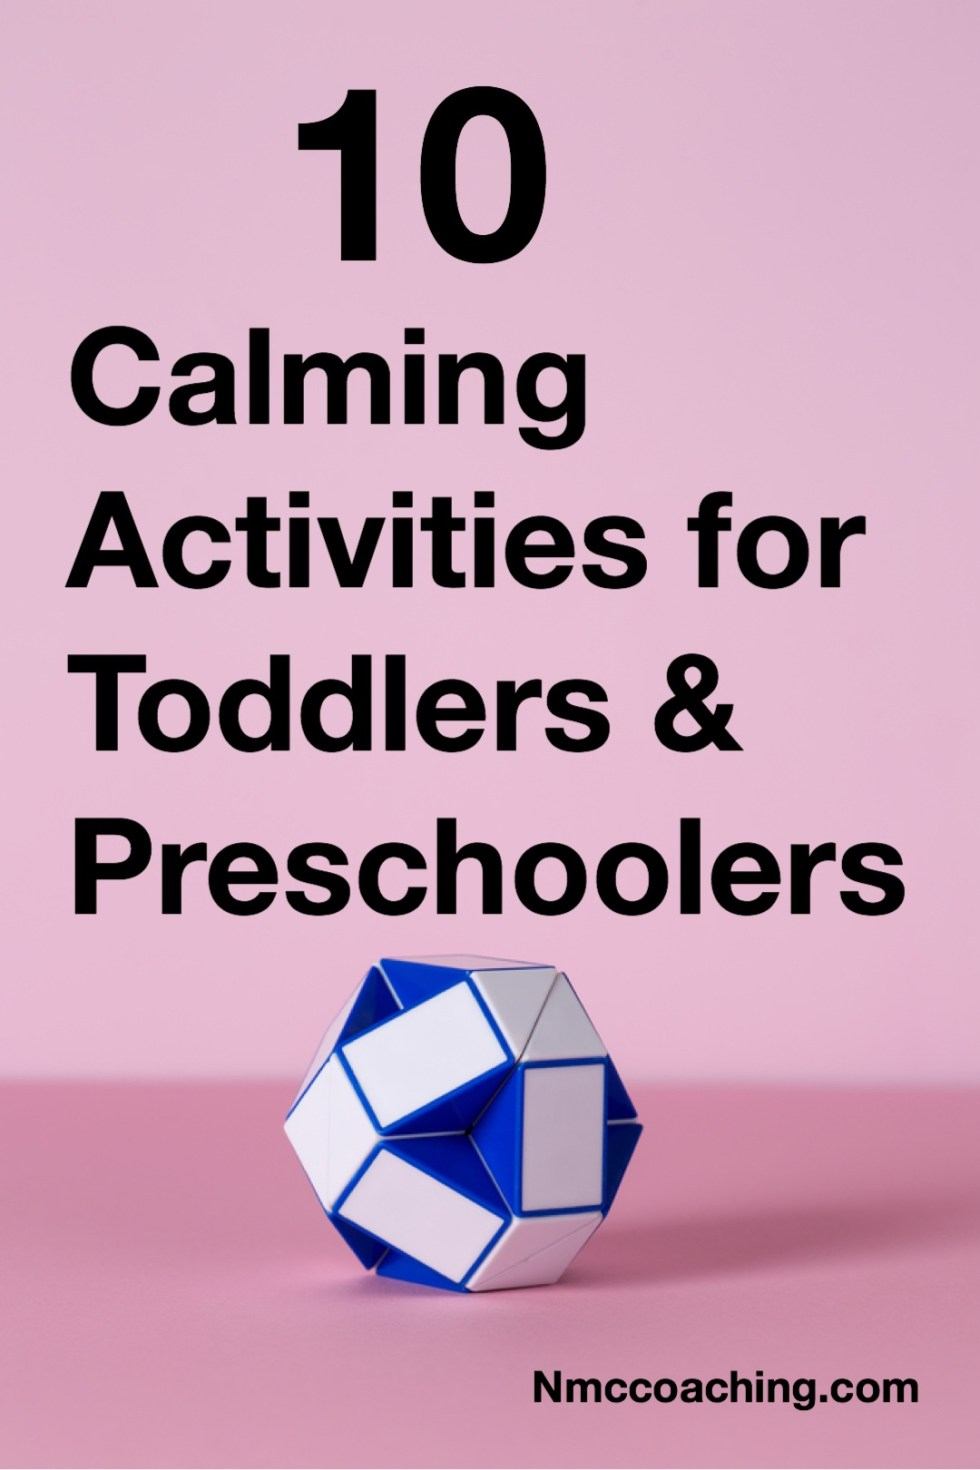 10 Calming Activities for Toddlers and Preschoolers